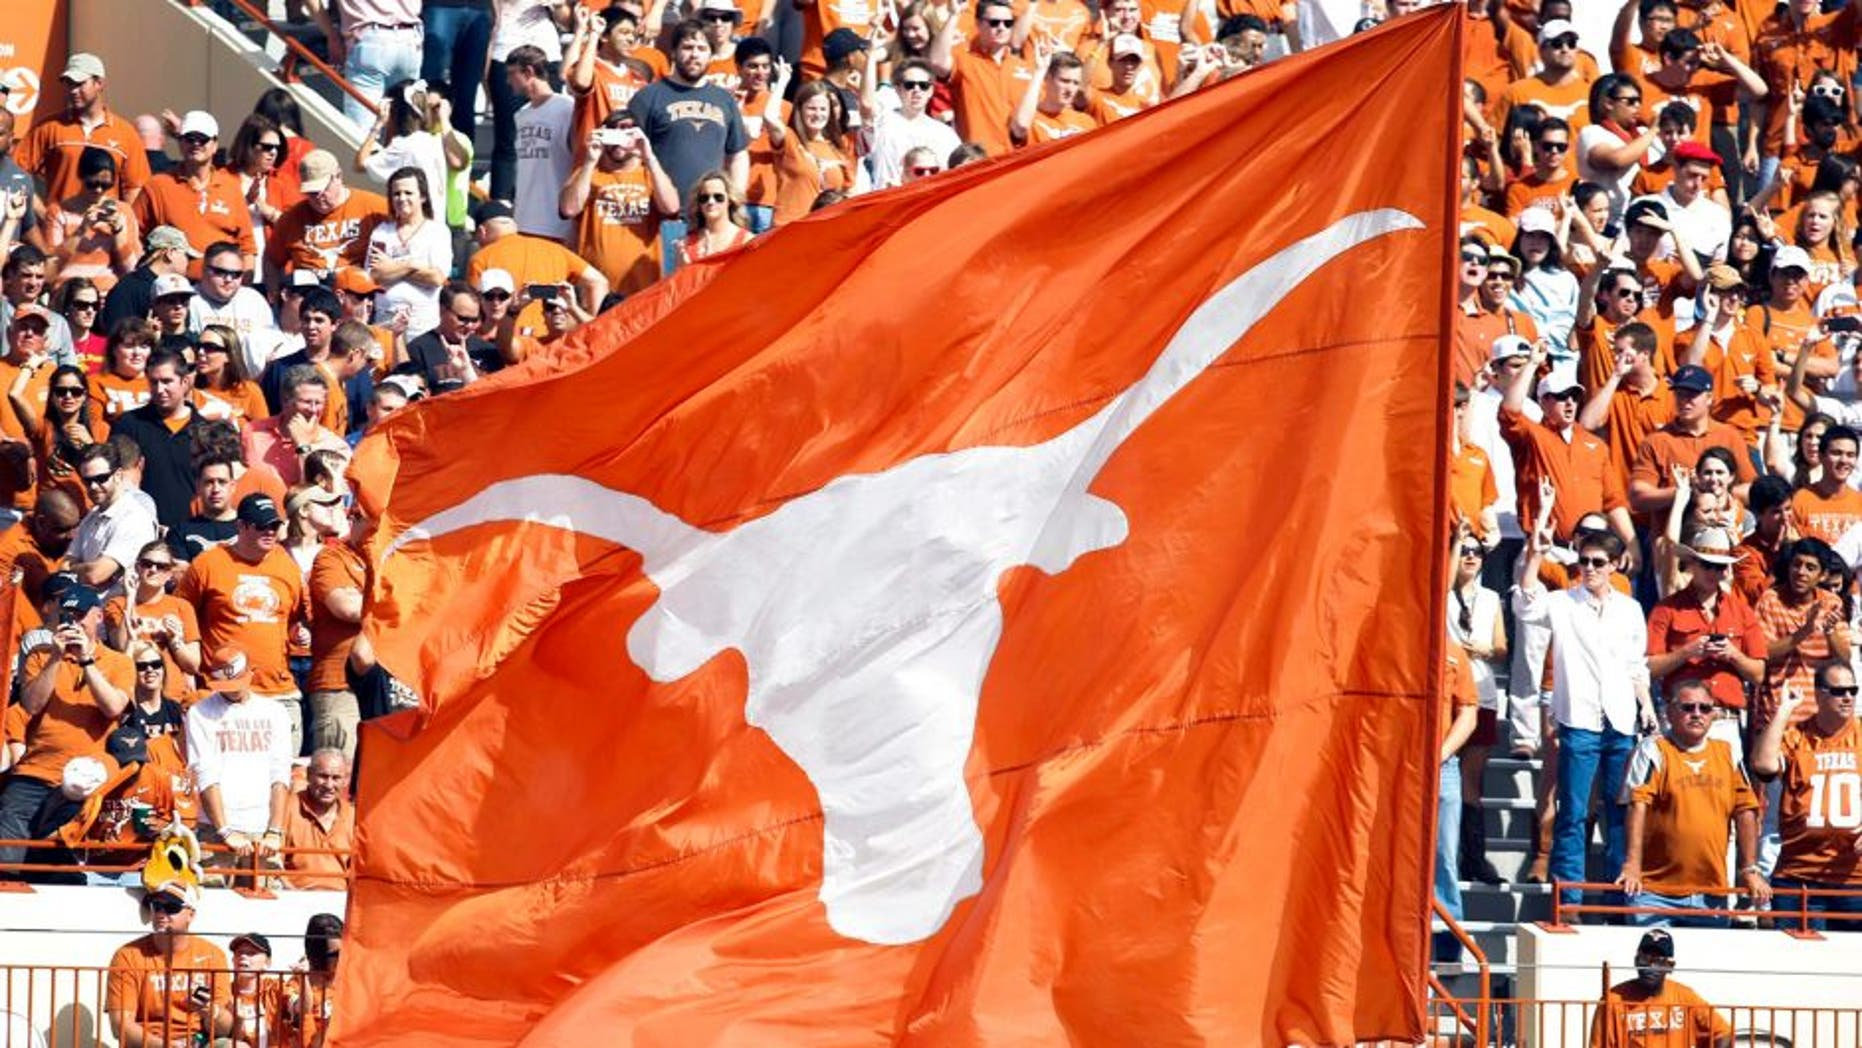 Nov 10, 2012; Austin, TX, USA; Texas Longhorns cheerleaders wave a flag after a touchdown against the Iowa State Cyclones in the first quarter at Darrell K Royal-Texas Memorial Stadium. Mandatory Credit: Brett Davis-USA TODAY Sports